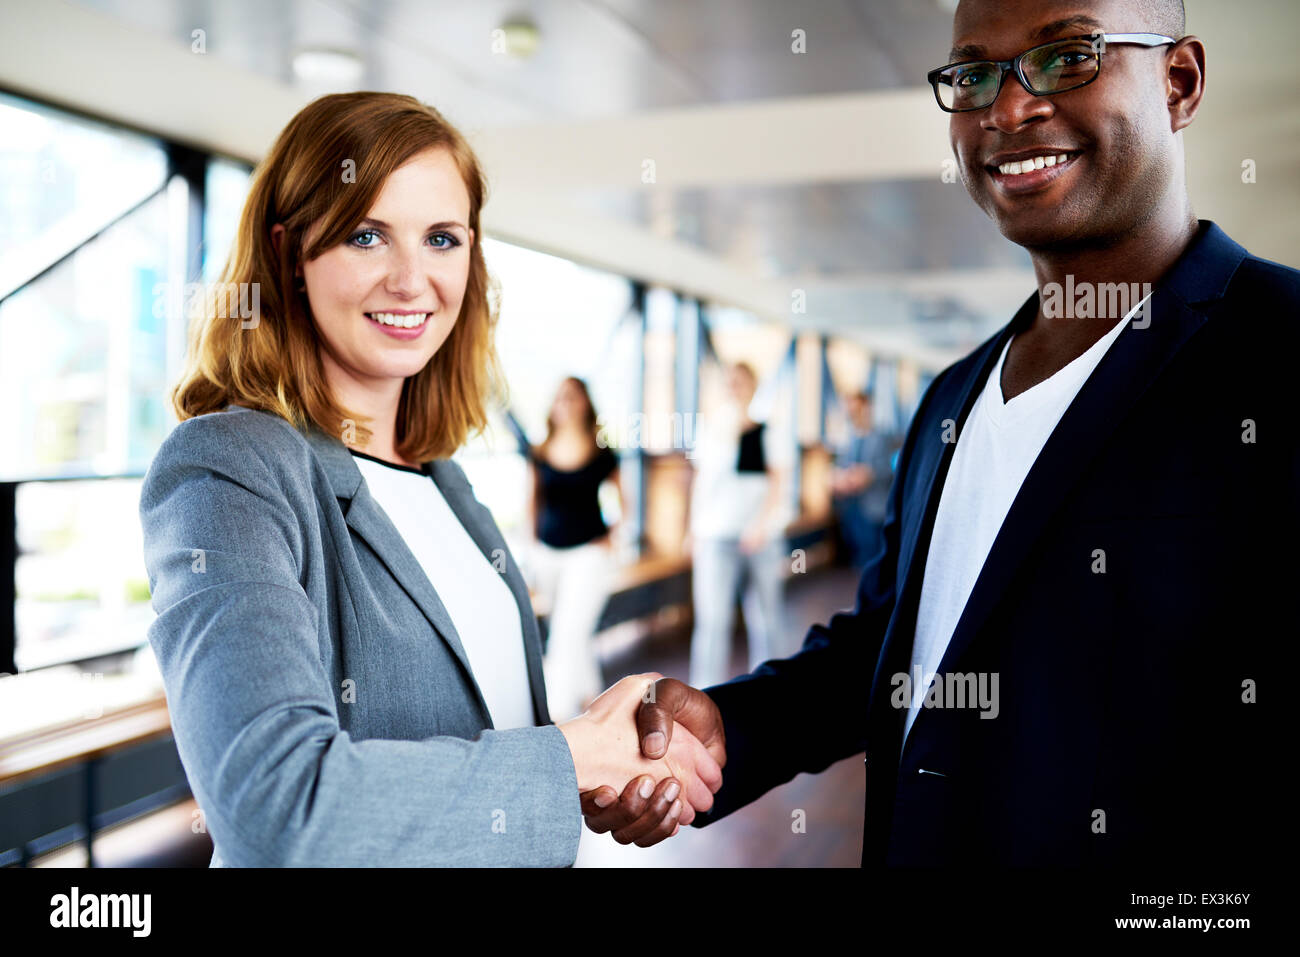 Close up of colleagues shaking hands smiling at camera - Stock Image